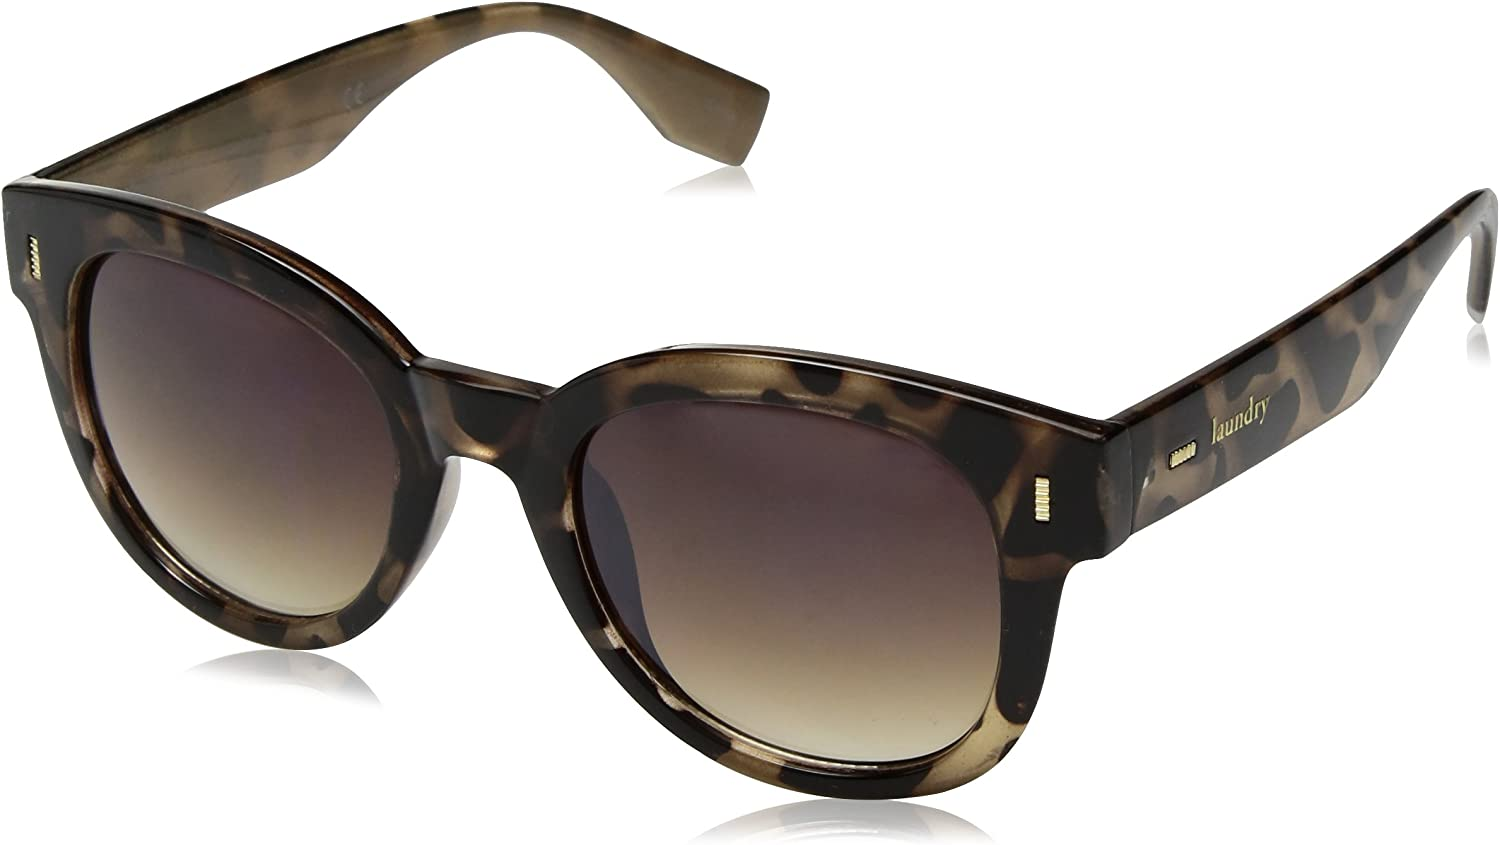 Laundry by Shelli Segal Women's LS121 Oval Sunglasses with 100% UV Protection, 50 mm